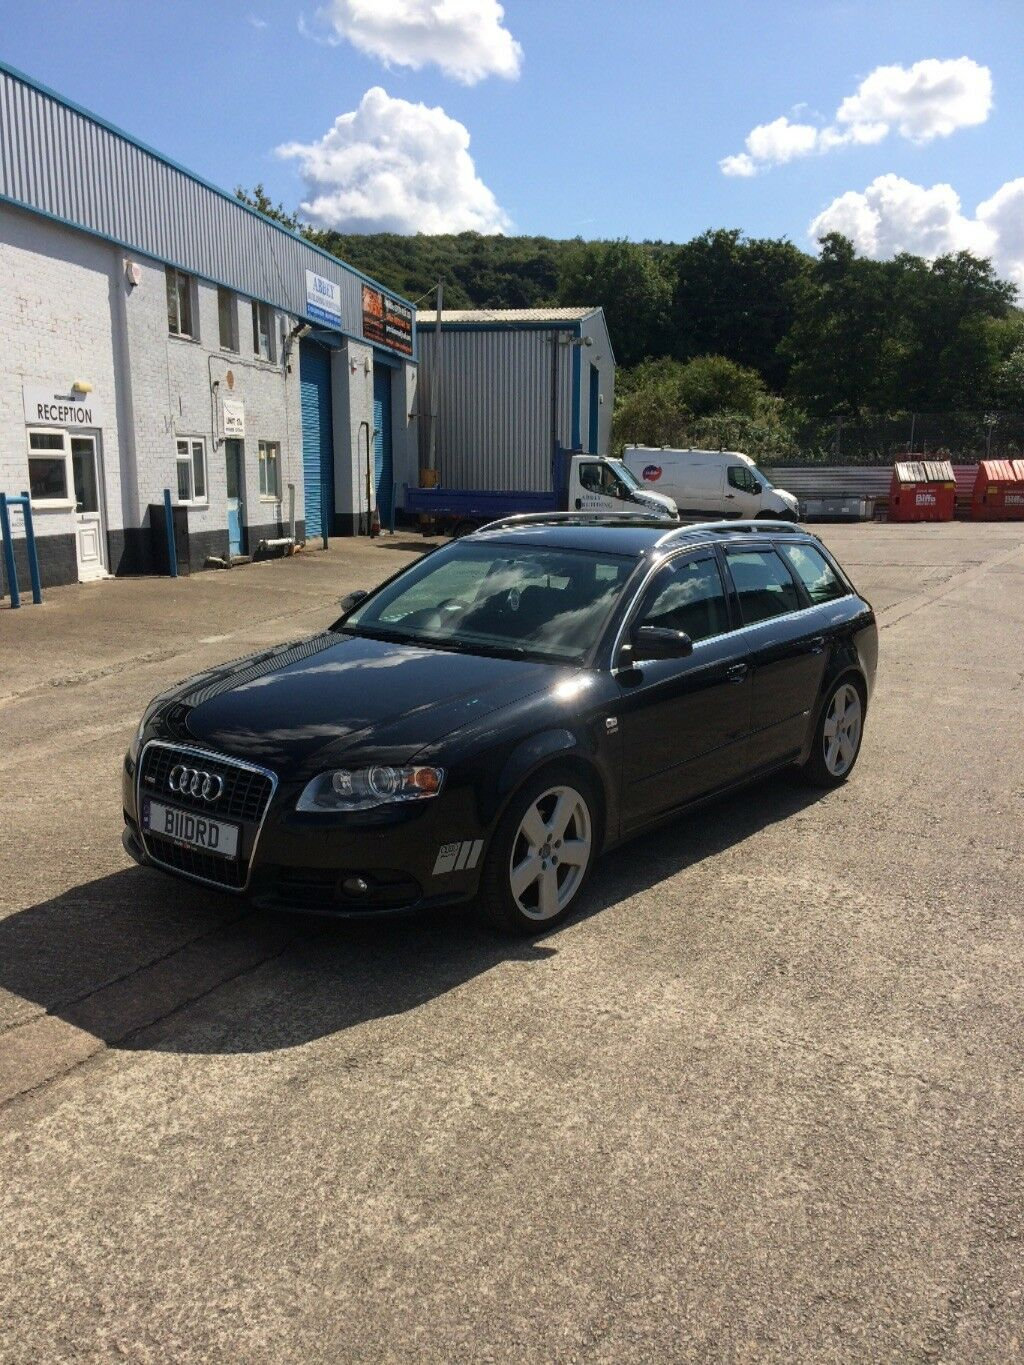 Ebay audi a4 avant tdi s line for sale usa